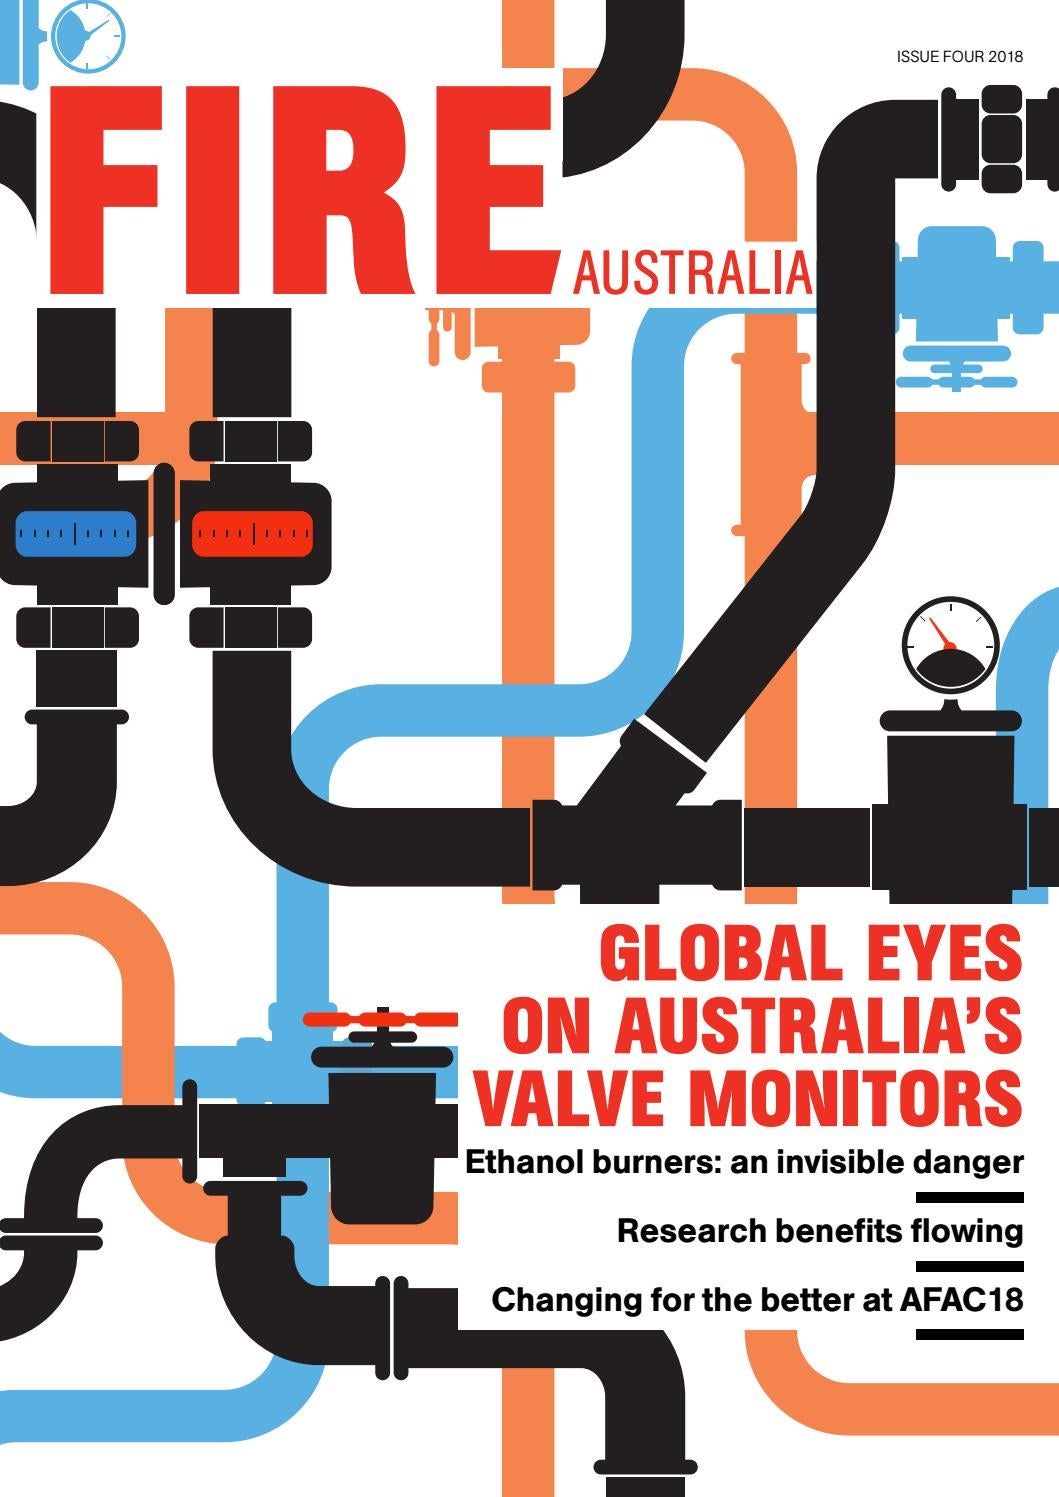 Fire Australia magazine Issue 4 2018 by AFAC - issuu